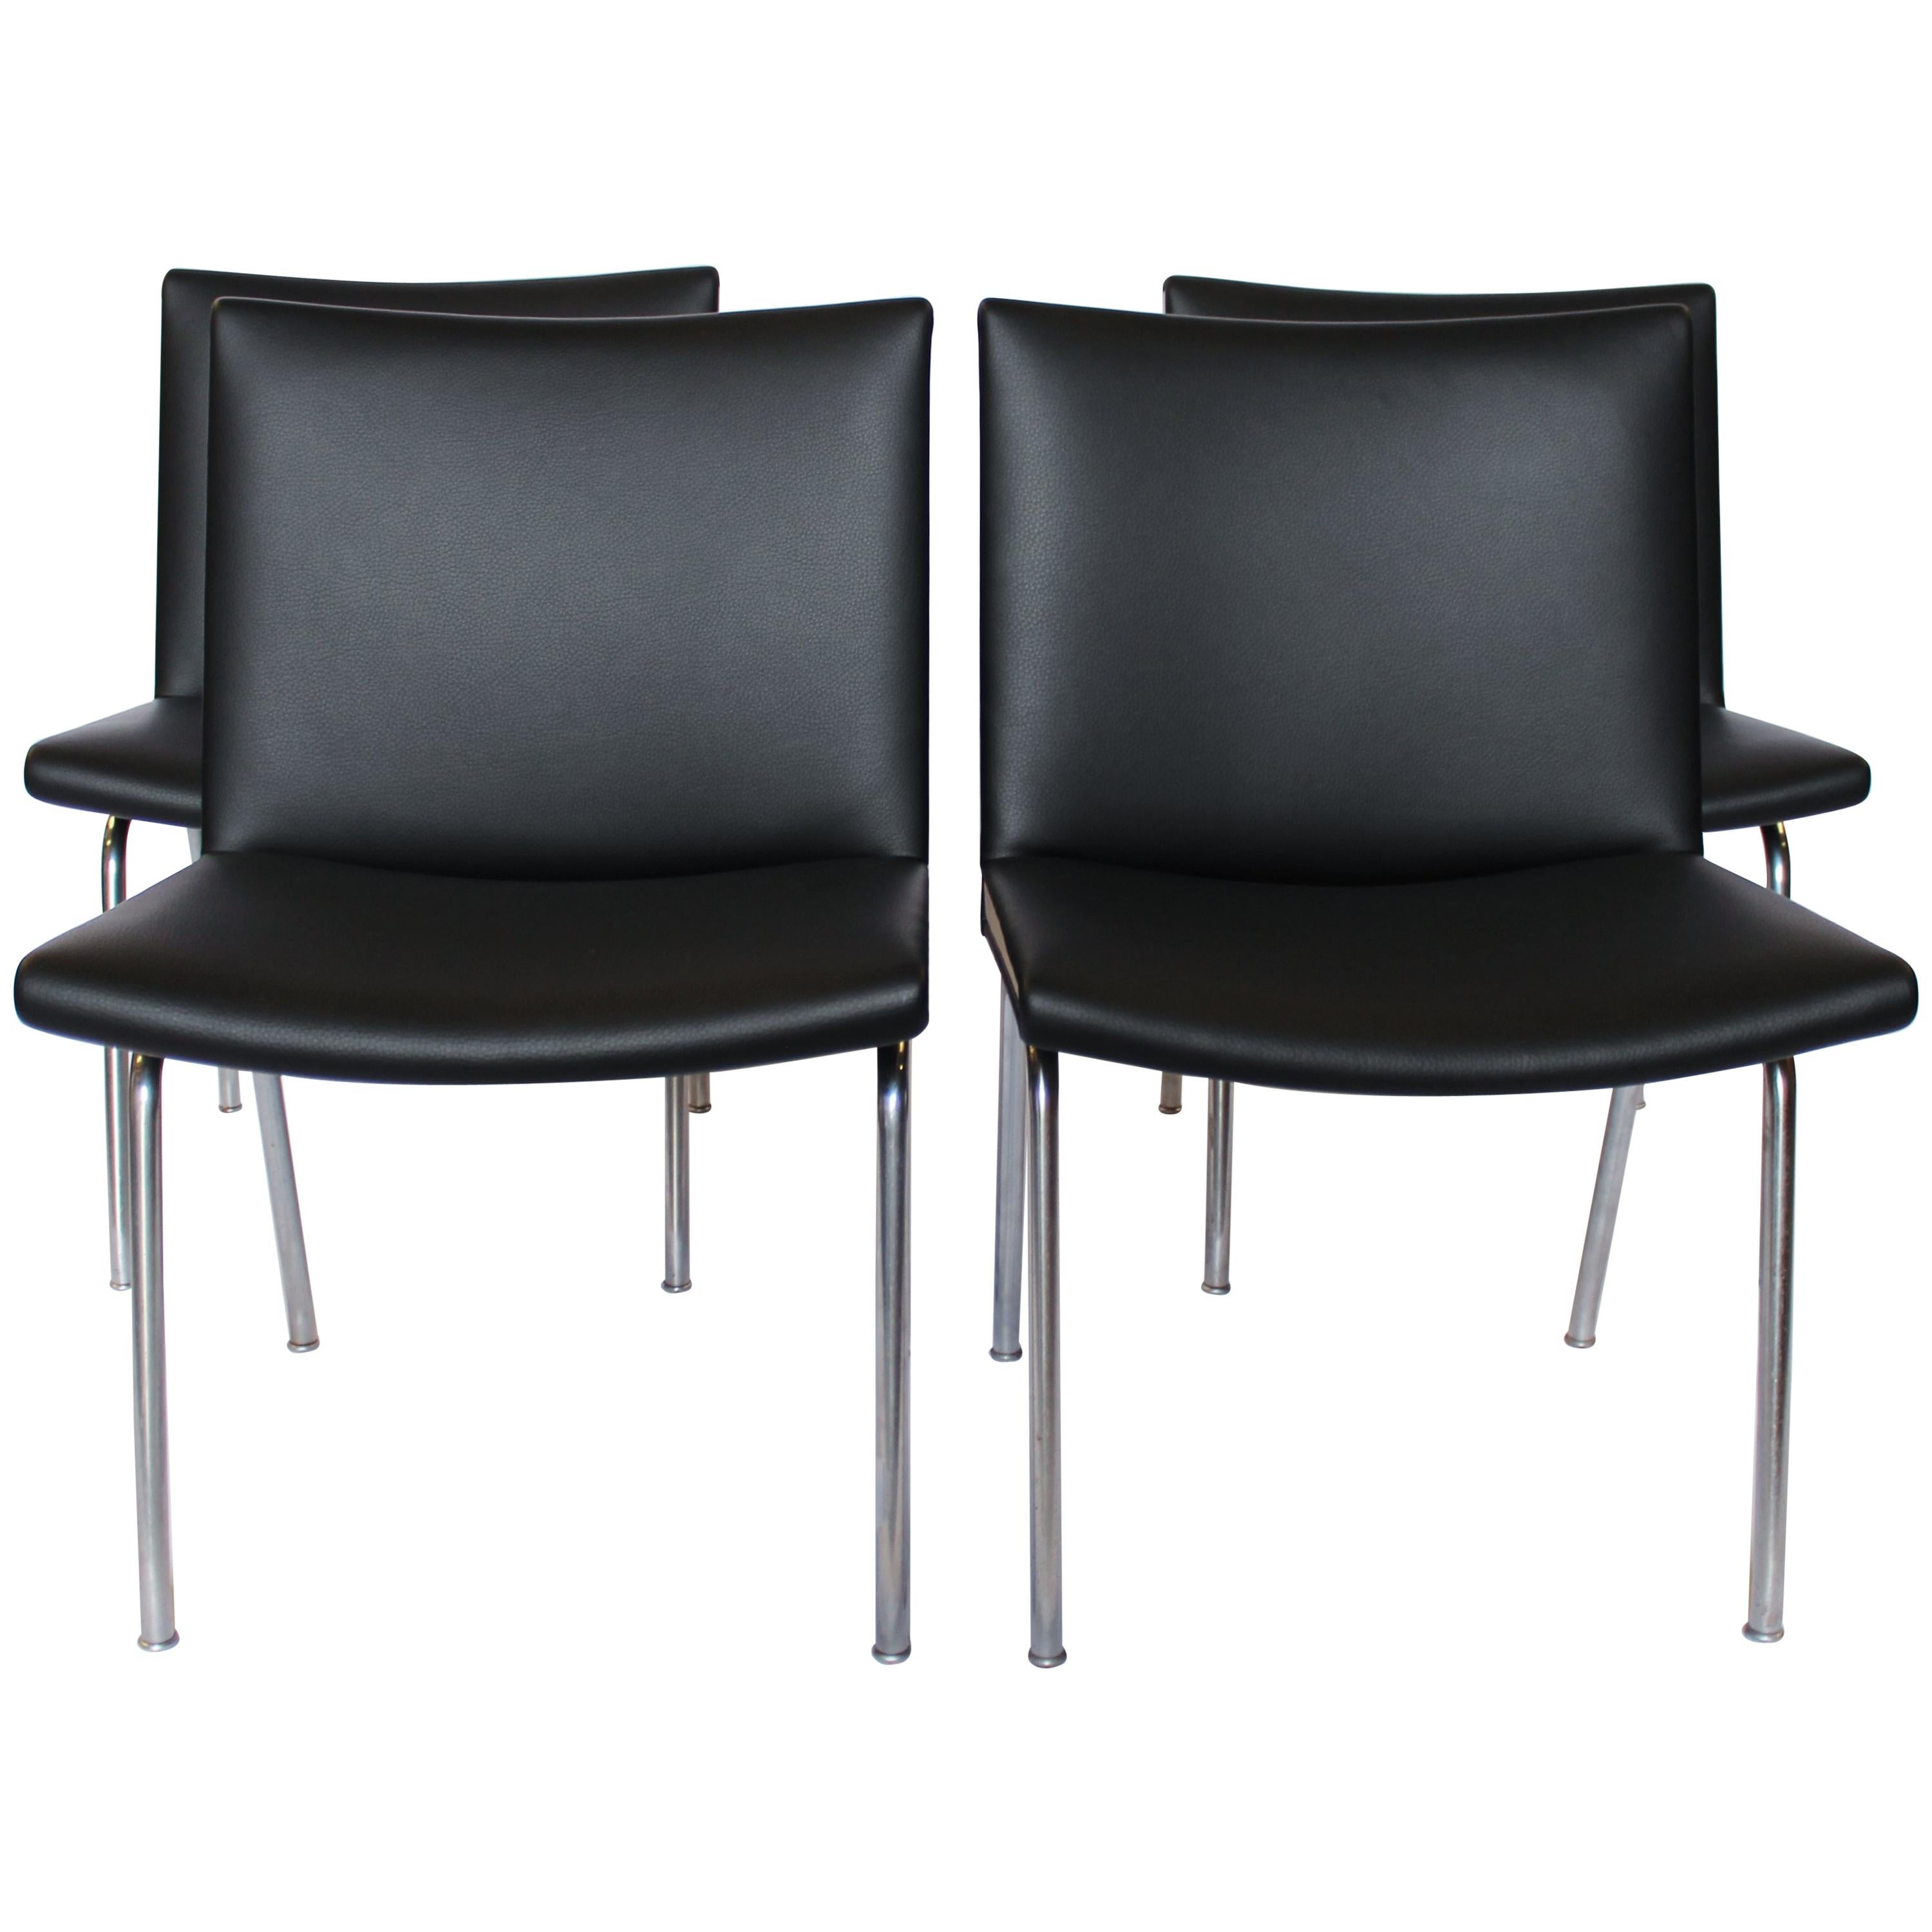 """Set of Four """"Airport-Chairs"""", Model AP37 by Hans J. Wegner and AP Stolen, 1950s"""